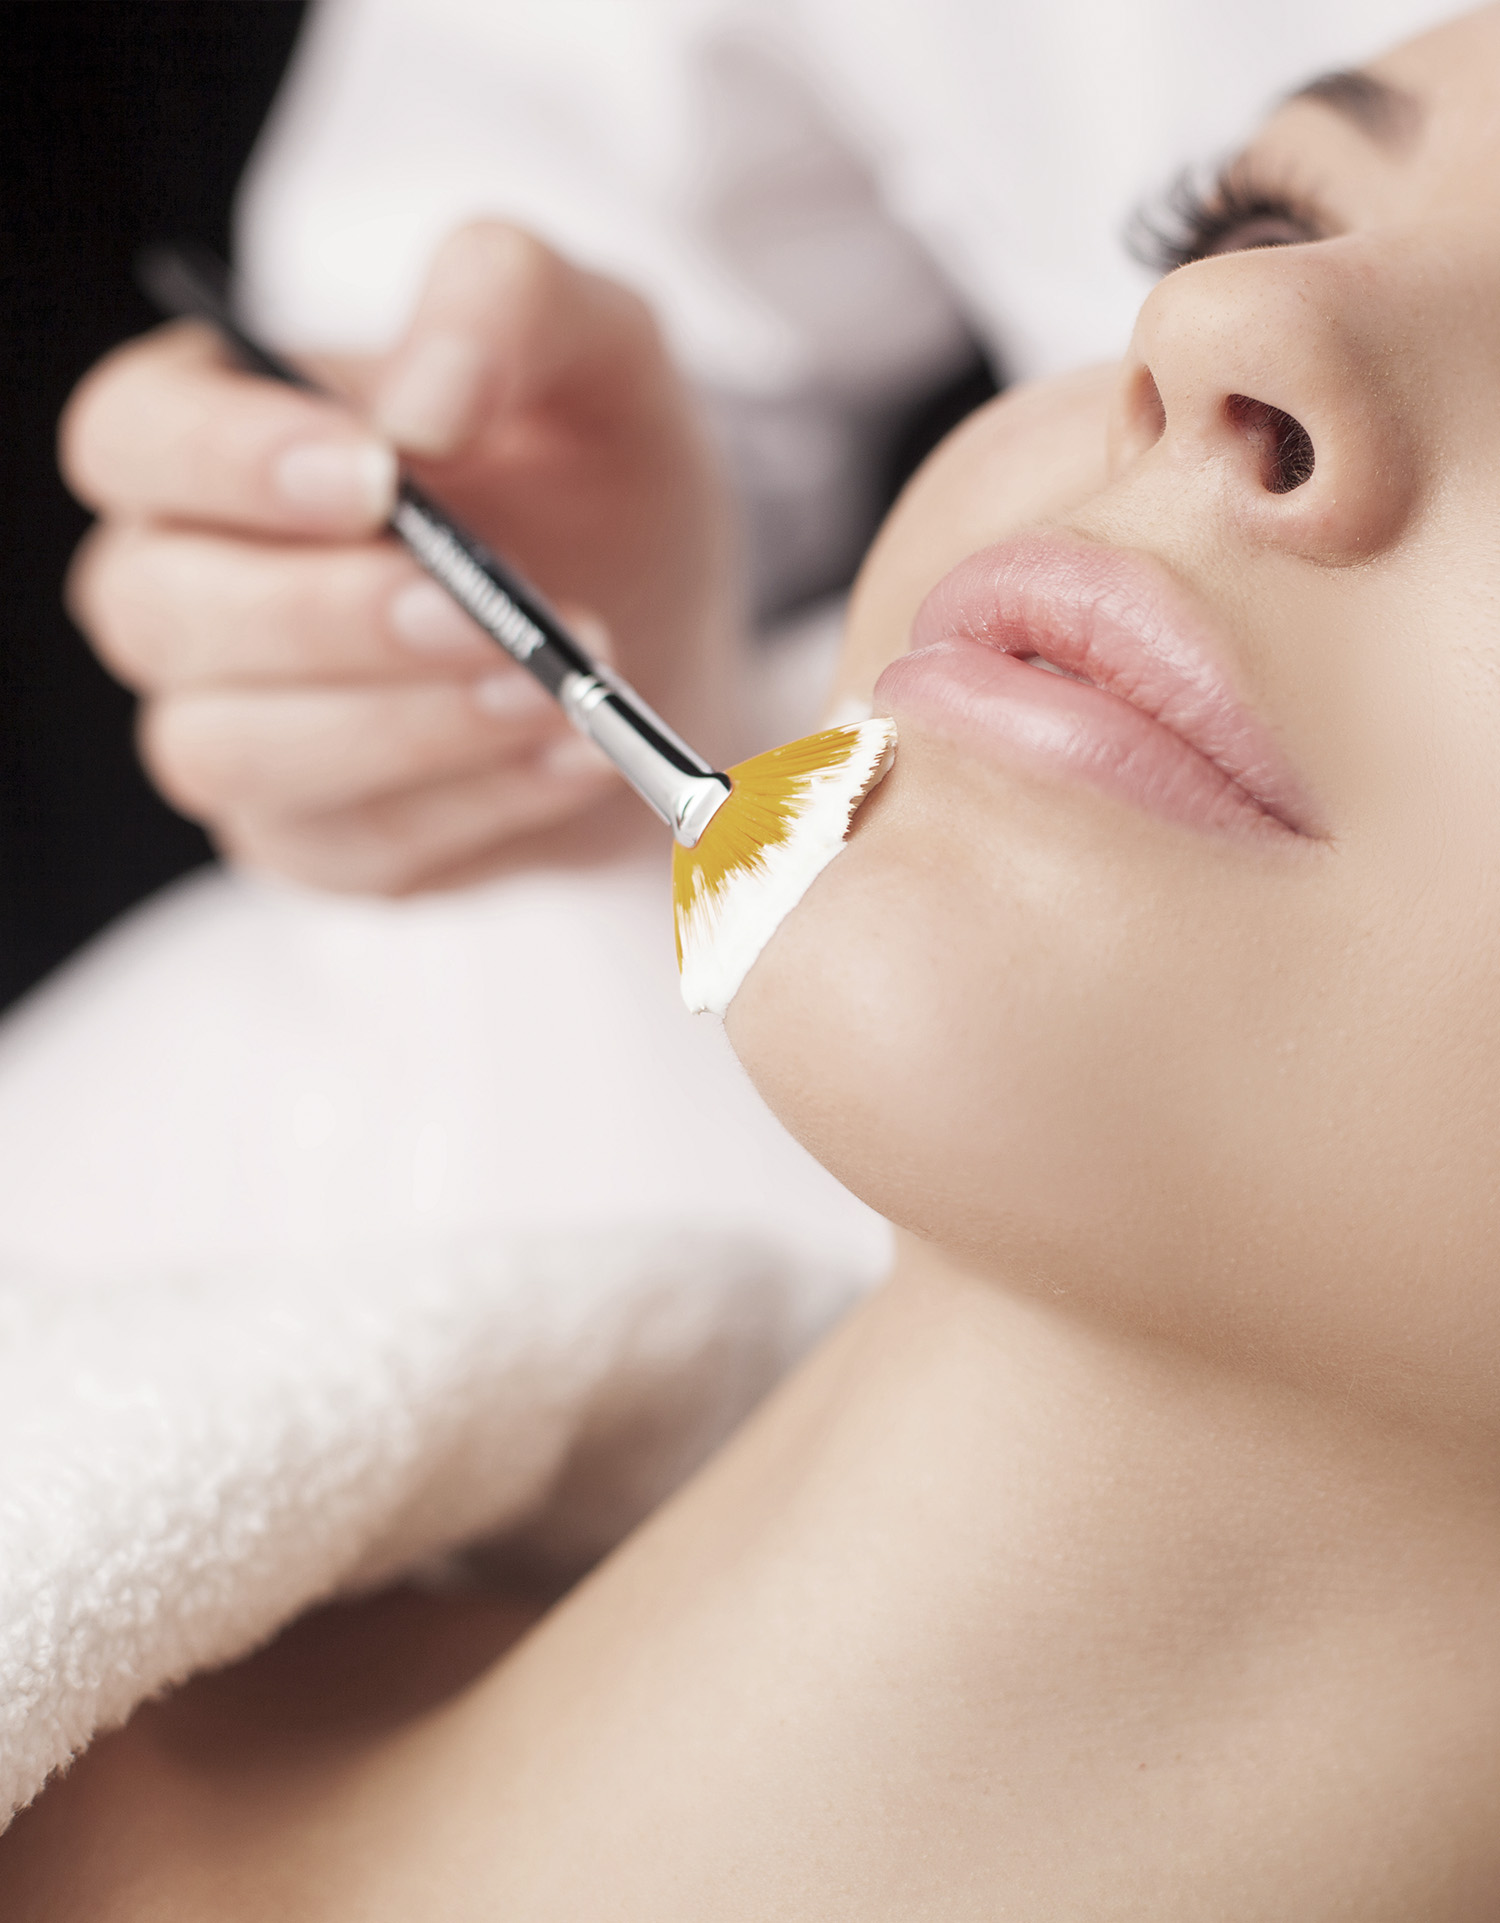 Facial Treatment Vancouver